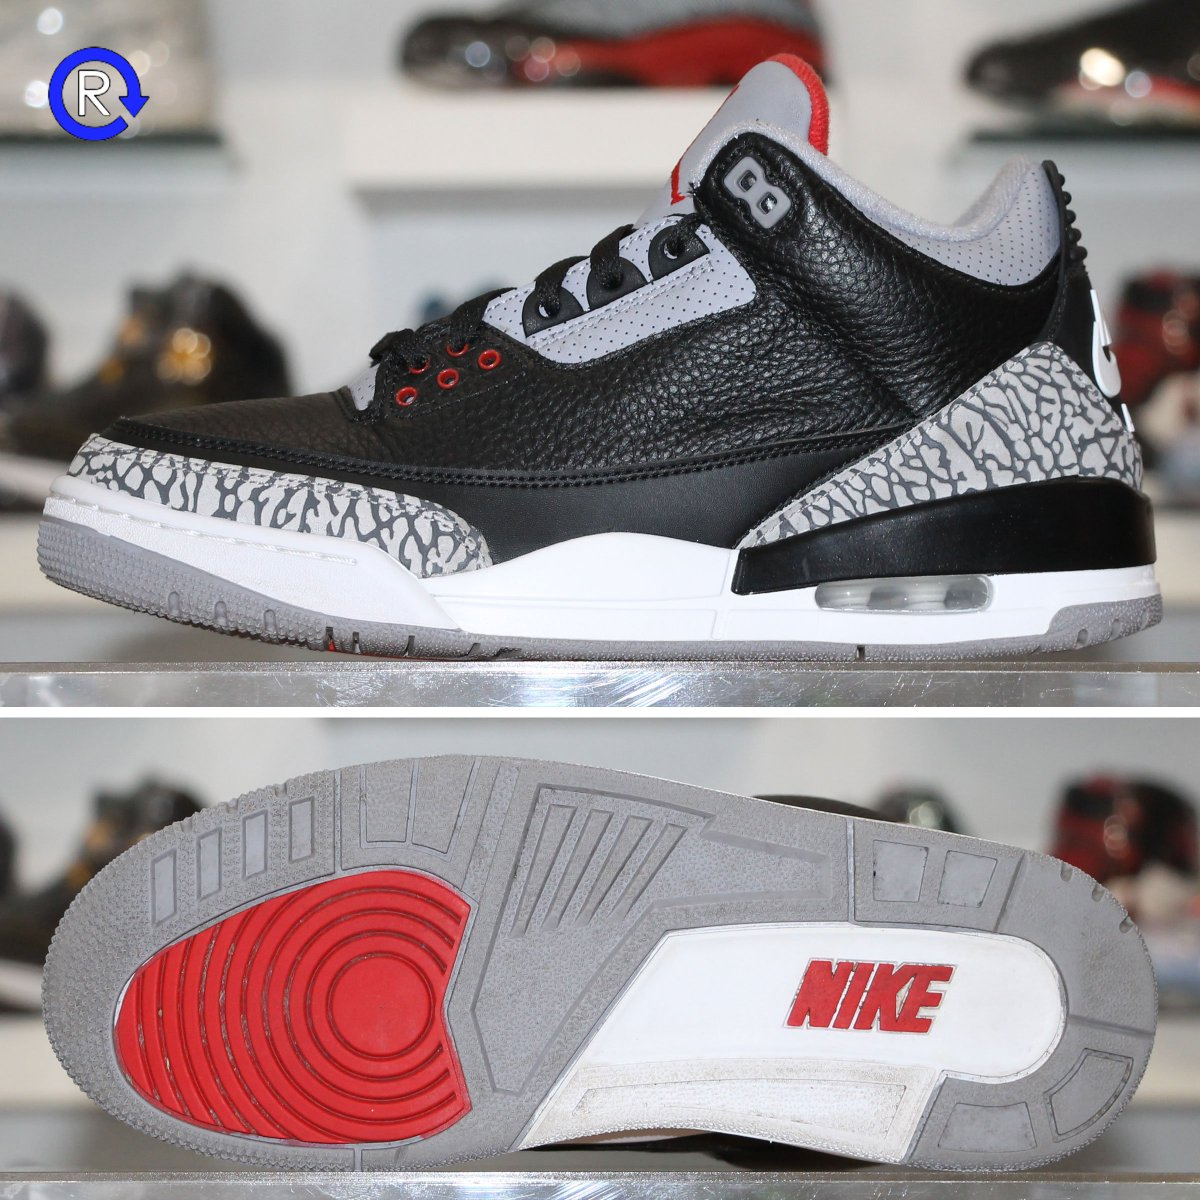 Size 8.5, 9 Black Cement Air Jordan 3 OG (2018) / $200 / Available now in-store and online. Open Mon-Sat 12-6PM. 5450 Penn Ave. Pittsburgh PA 15206. RefreshPGH.com.